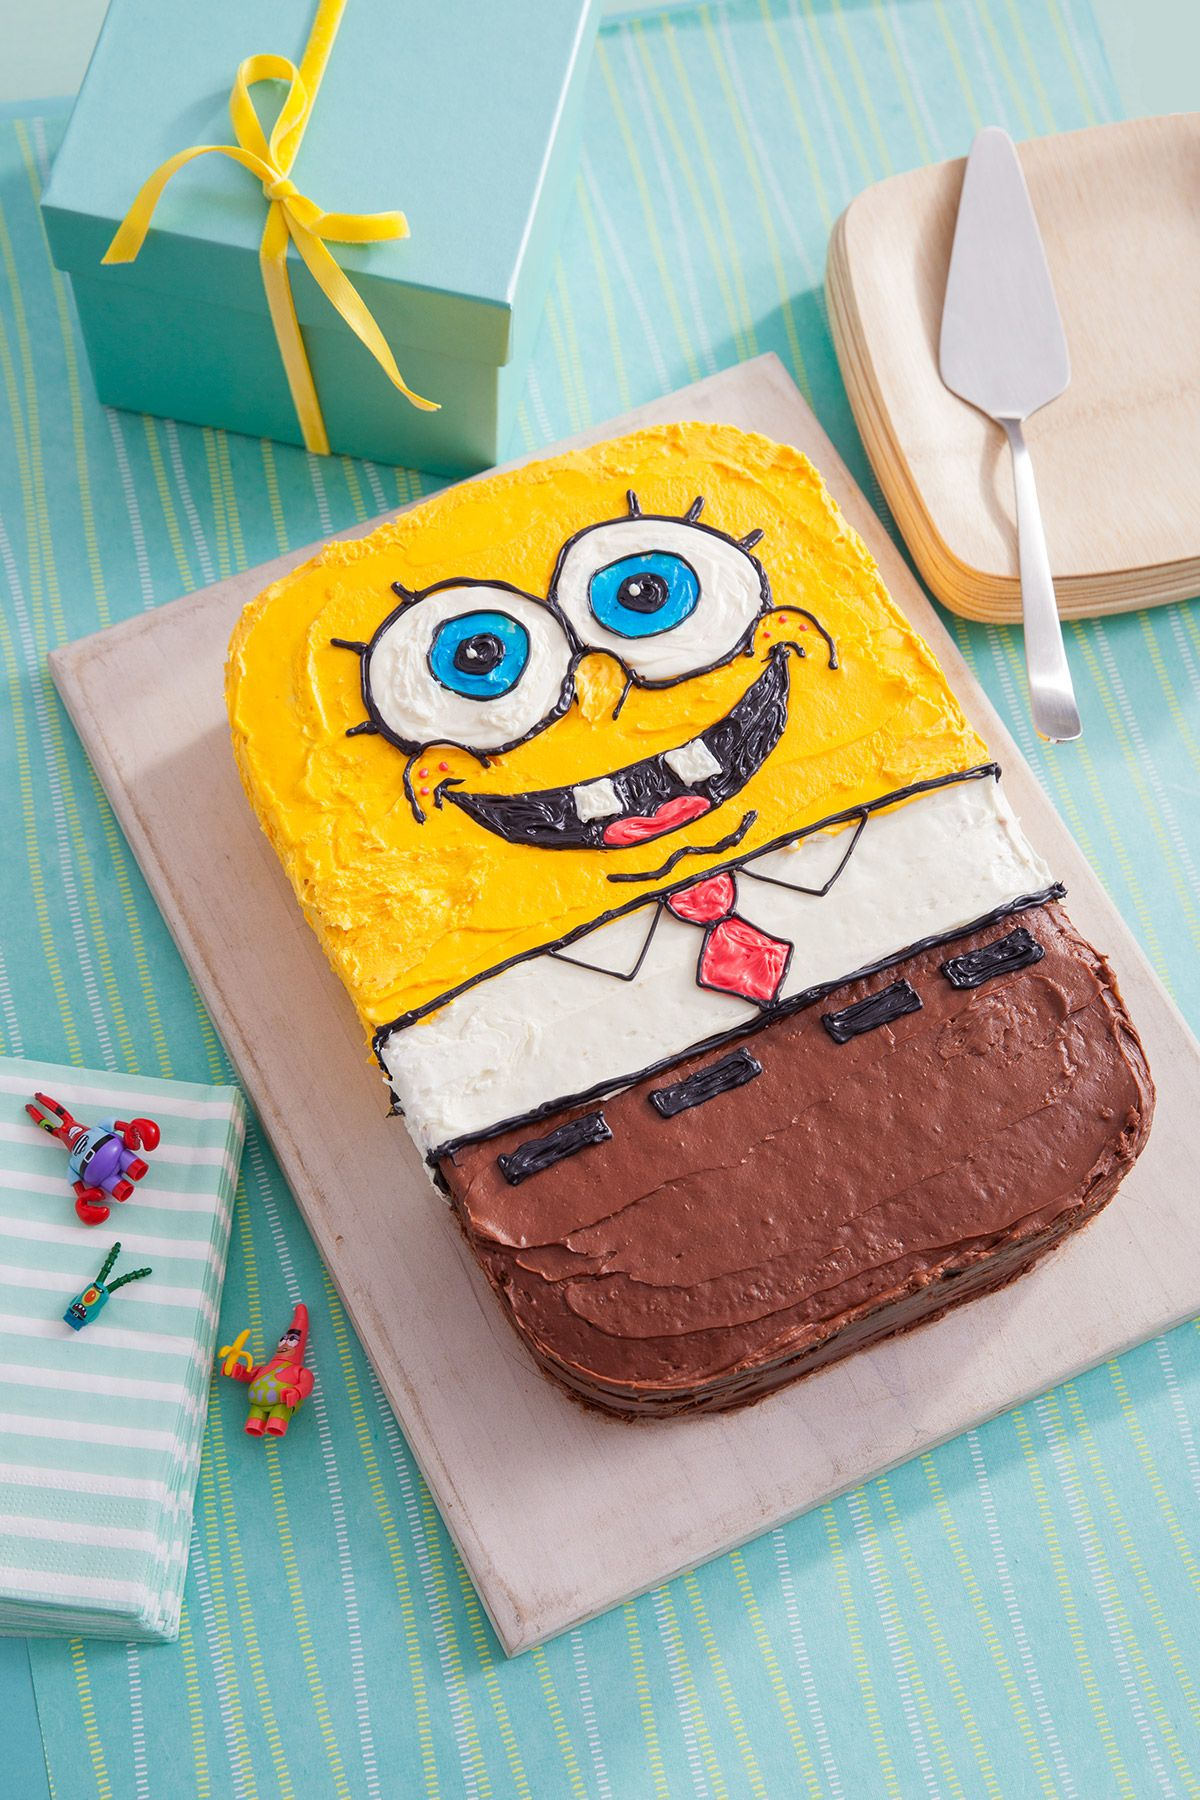 spongebob birthday cake recipe